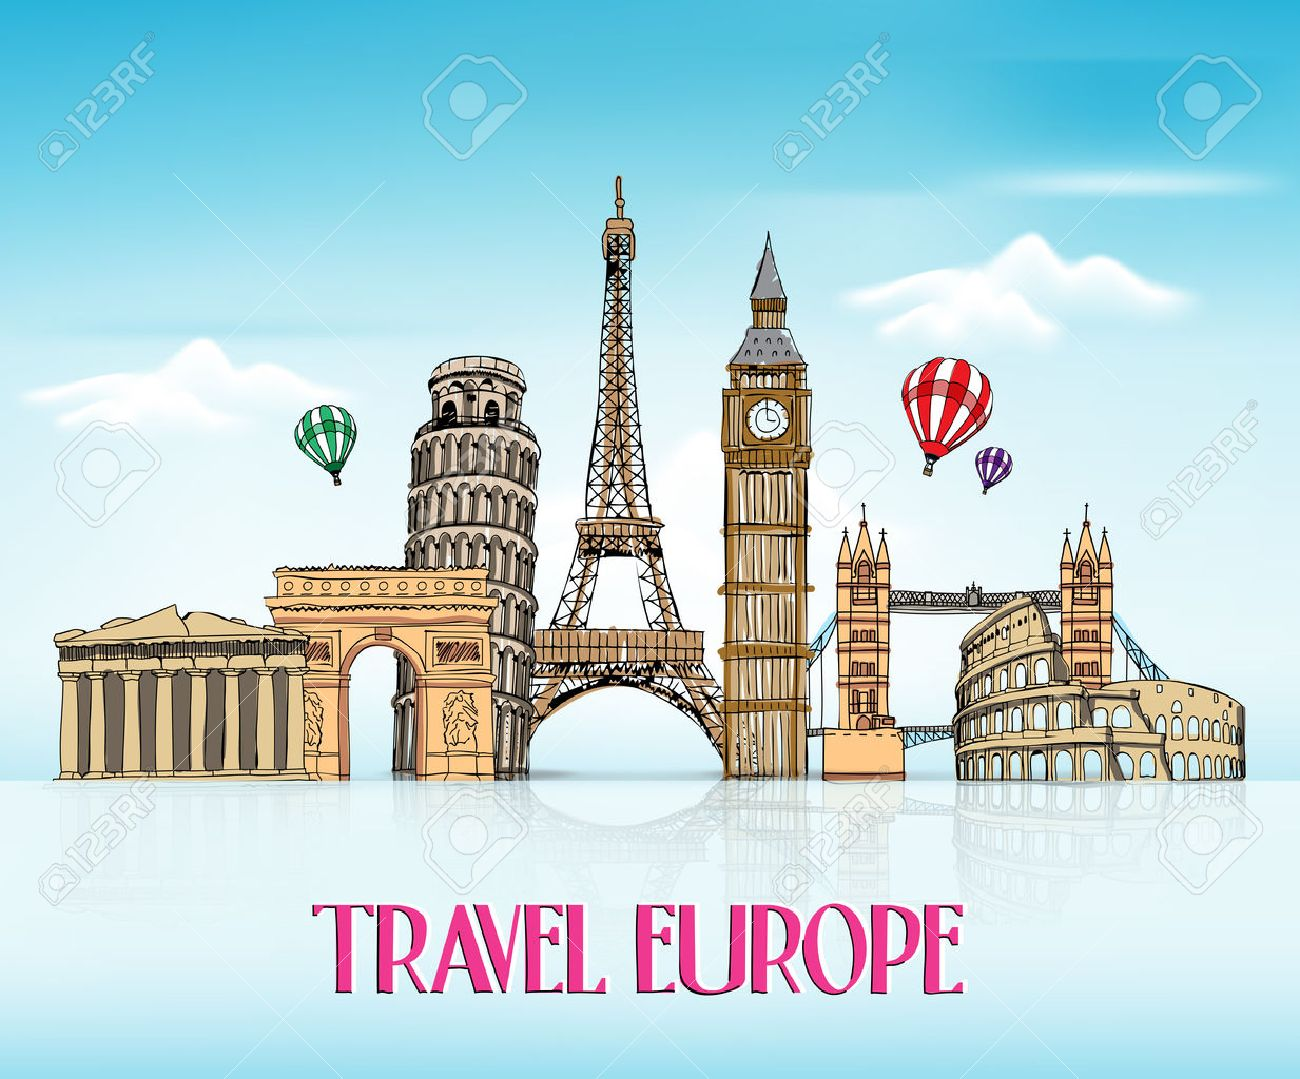 Travel Europe Hand Drawing With Famous Landmarks And Places In Blue Background Reflection Vector